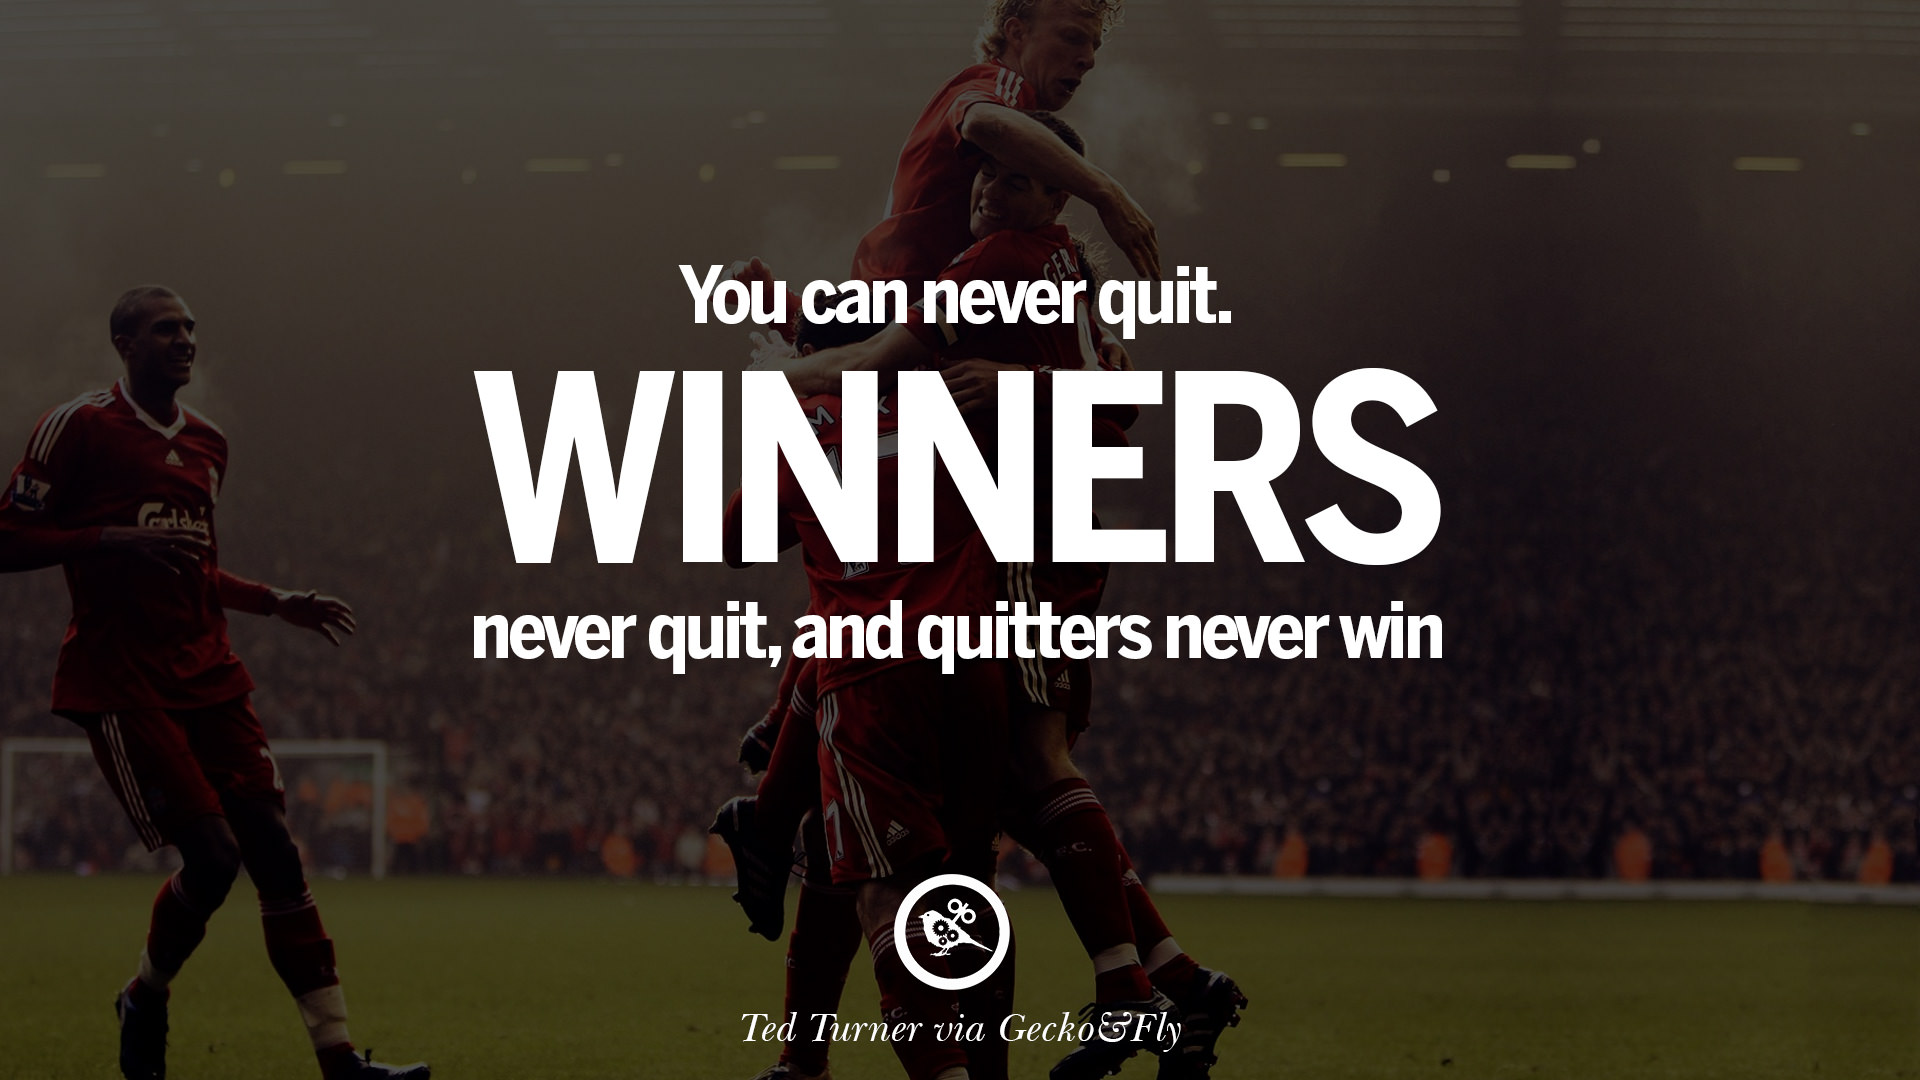 Motivational Football Quotes Wallpaper 20 Encouraging And Motivational Poster Quotes On Sports